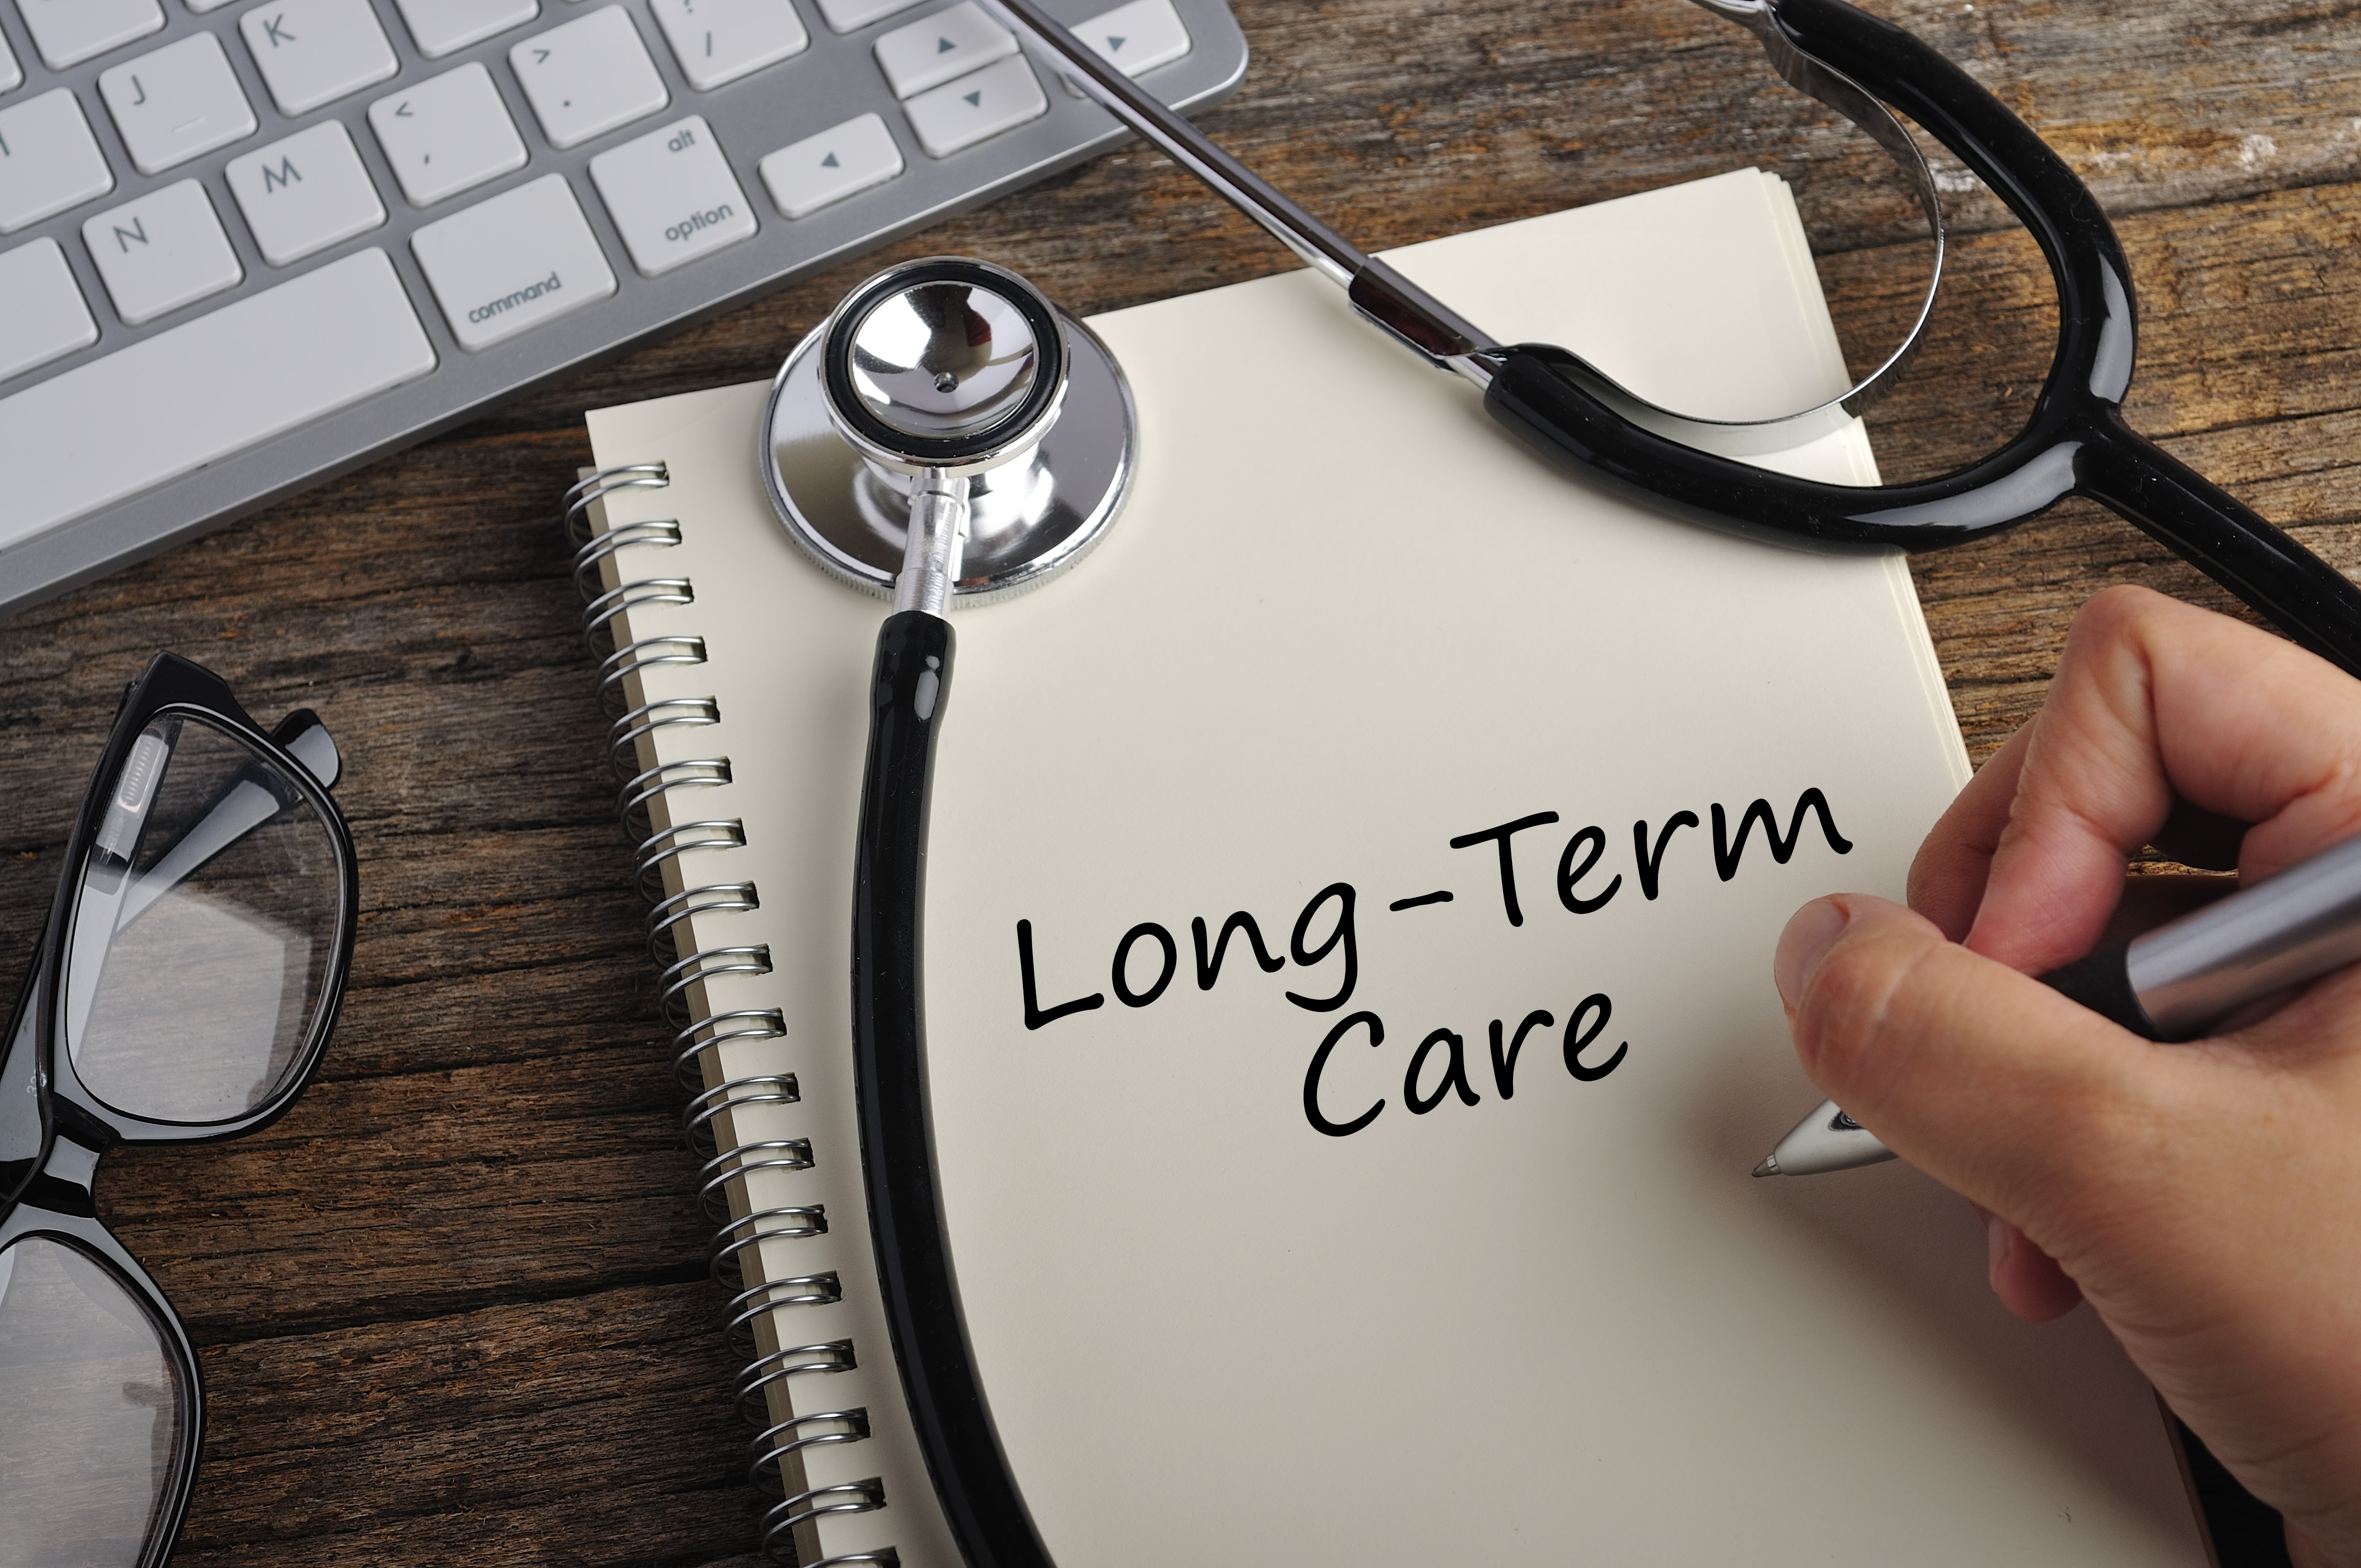 Baton Rouge Retirement Advisors:Do I need Long-Term Care Insurance in Retirement? If So, Why and How Much?